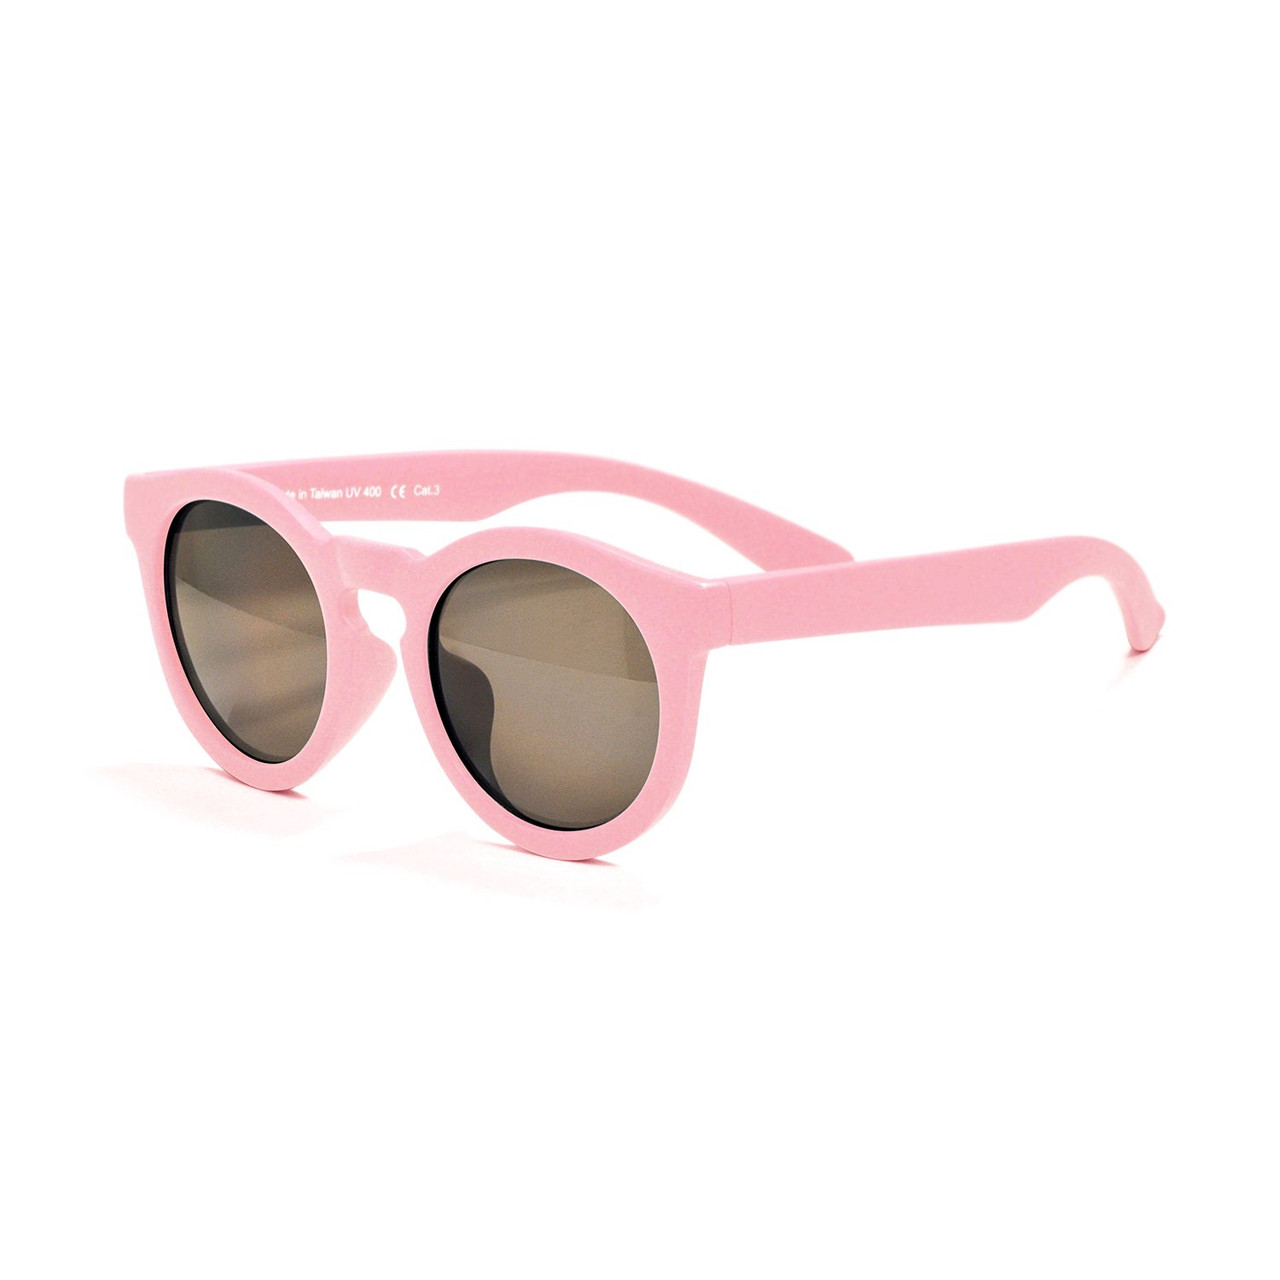 Chill Sunglasses for Youth by Real Shades Age 7+